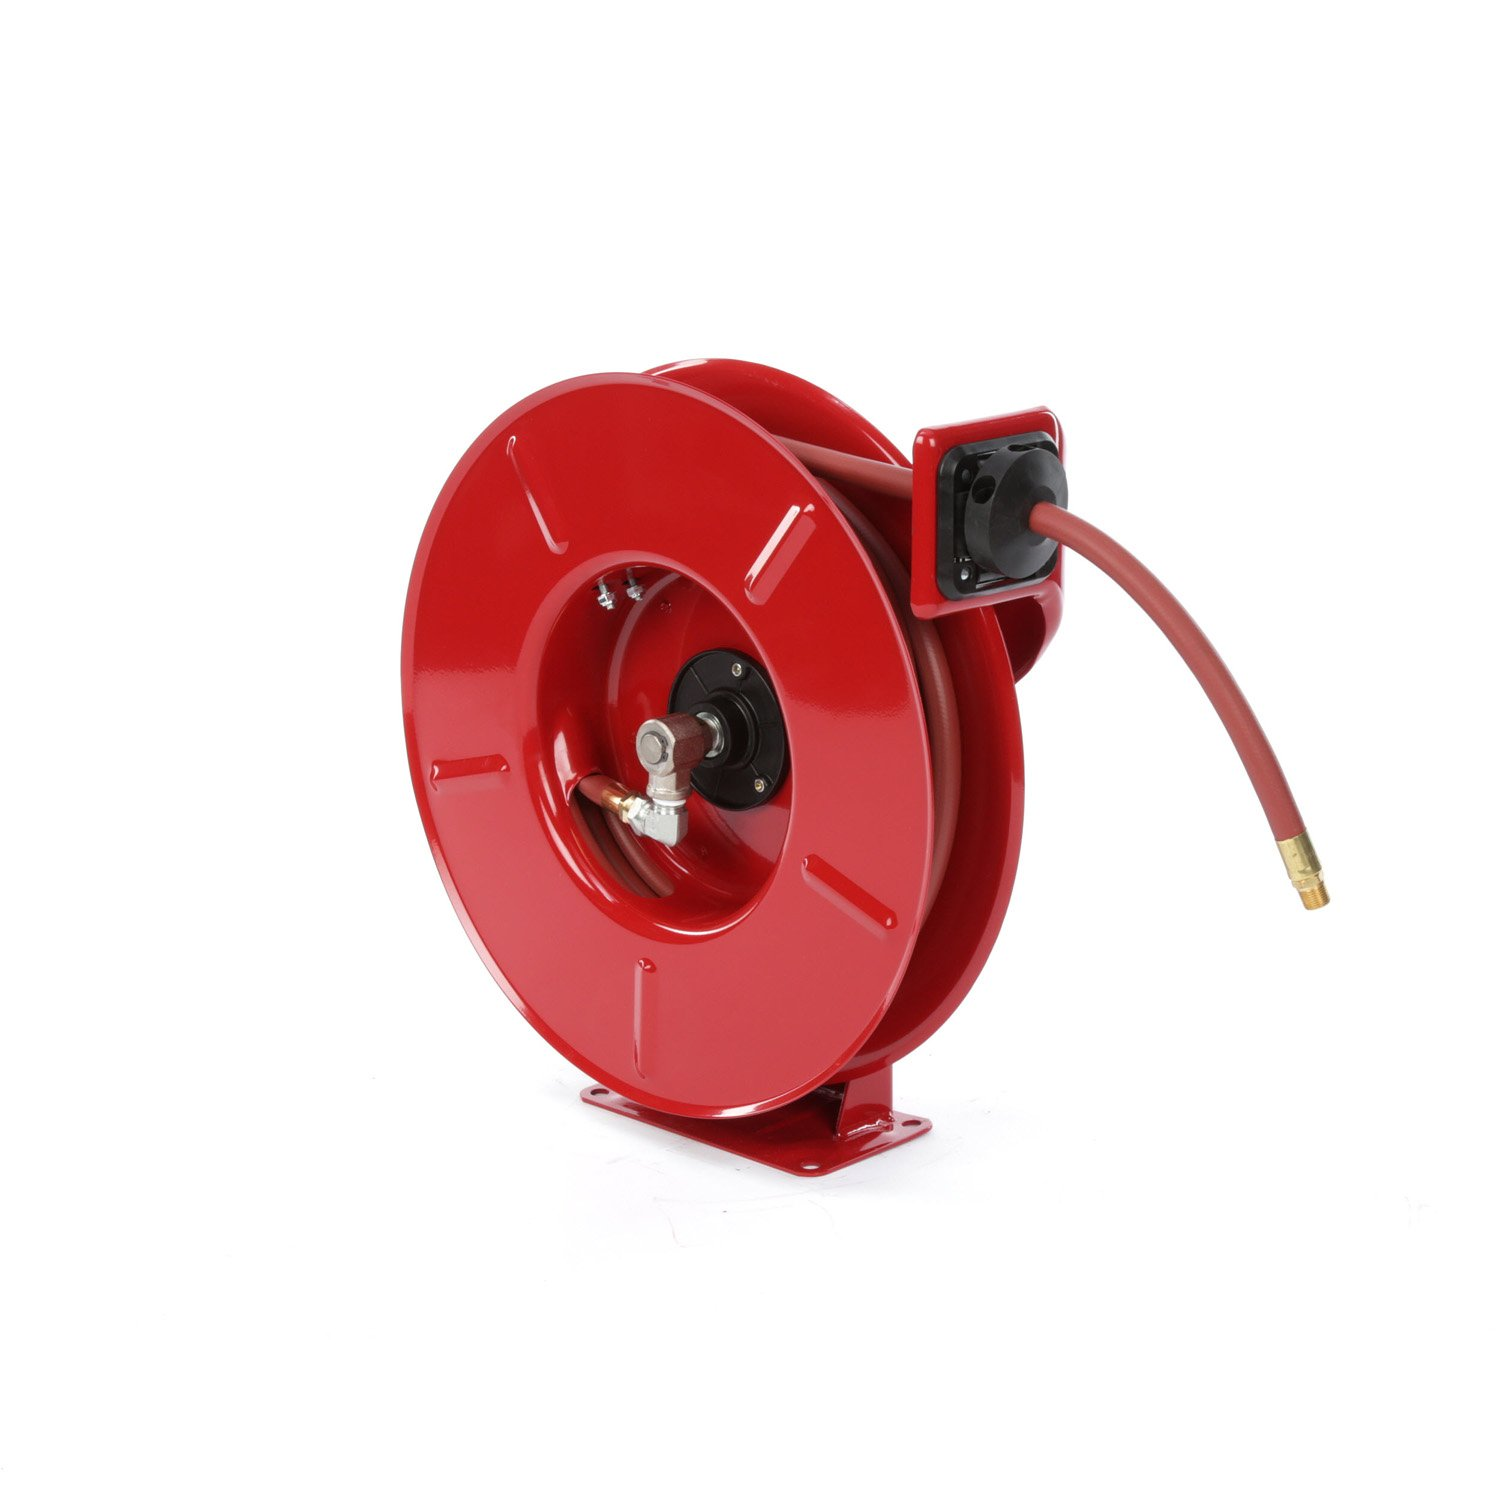 Heavy Duty Spring Rewind Hose Reel, 3/8'' x 70' 300 PSI by Reelcraft (Image #5)